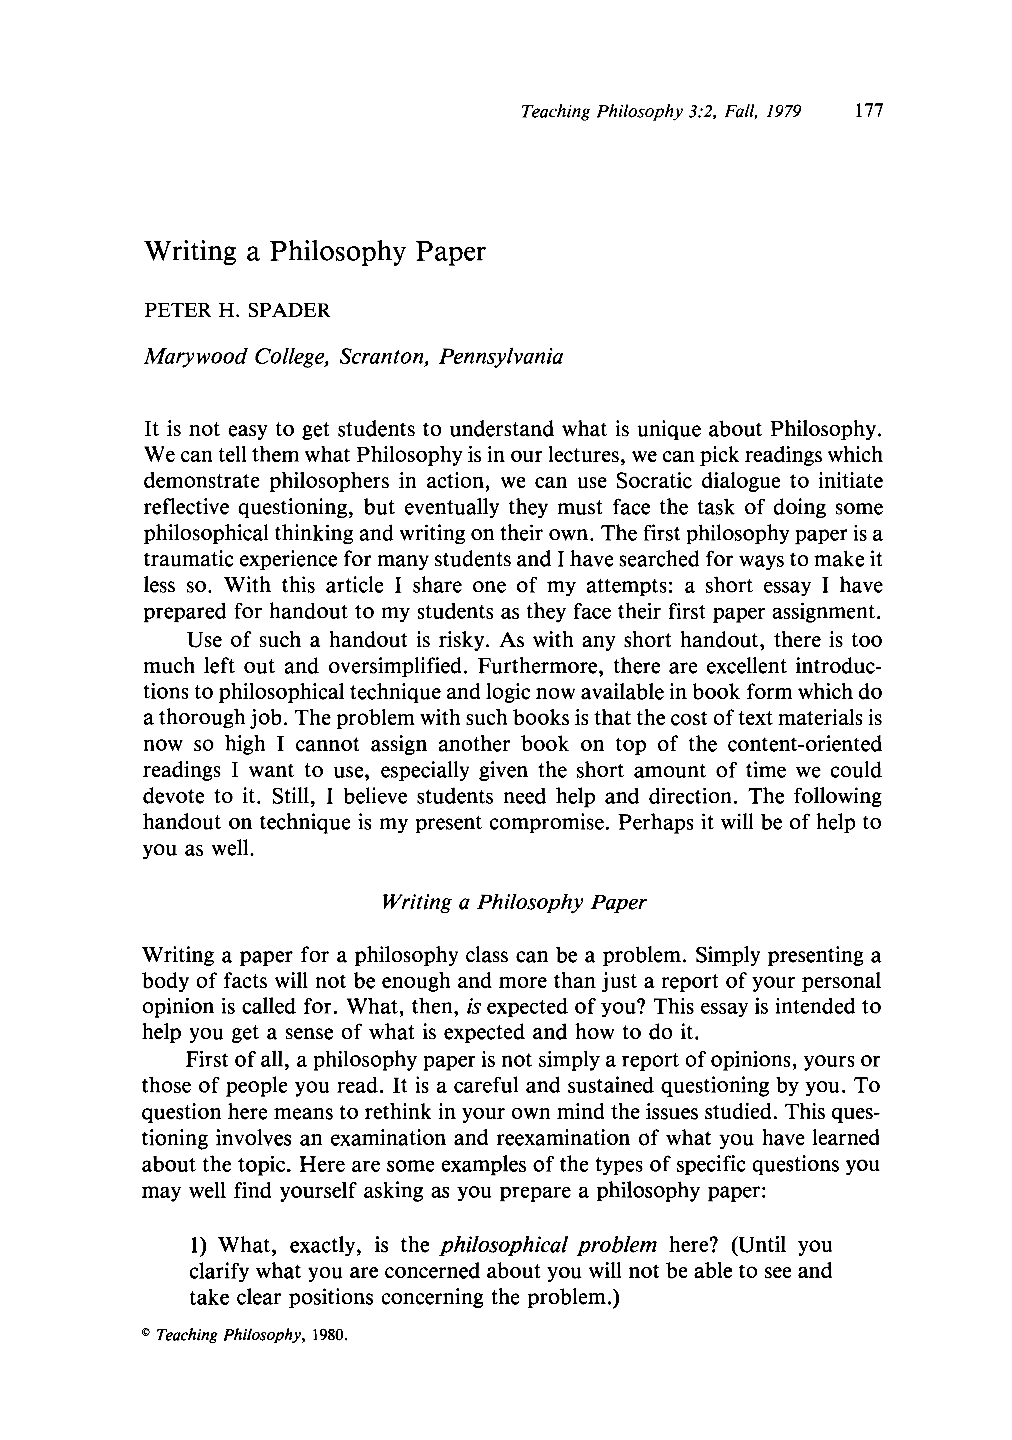 Custom philosophy essays